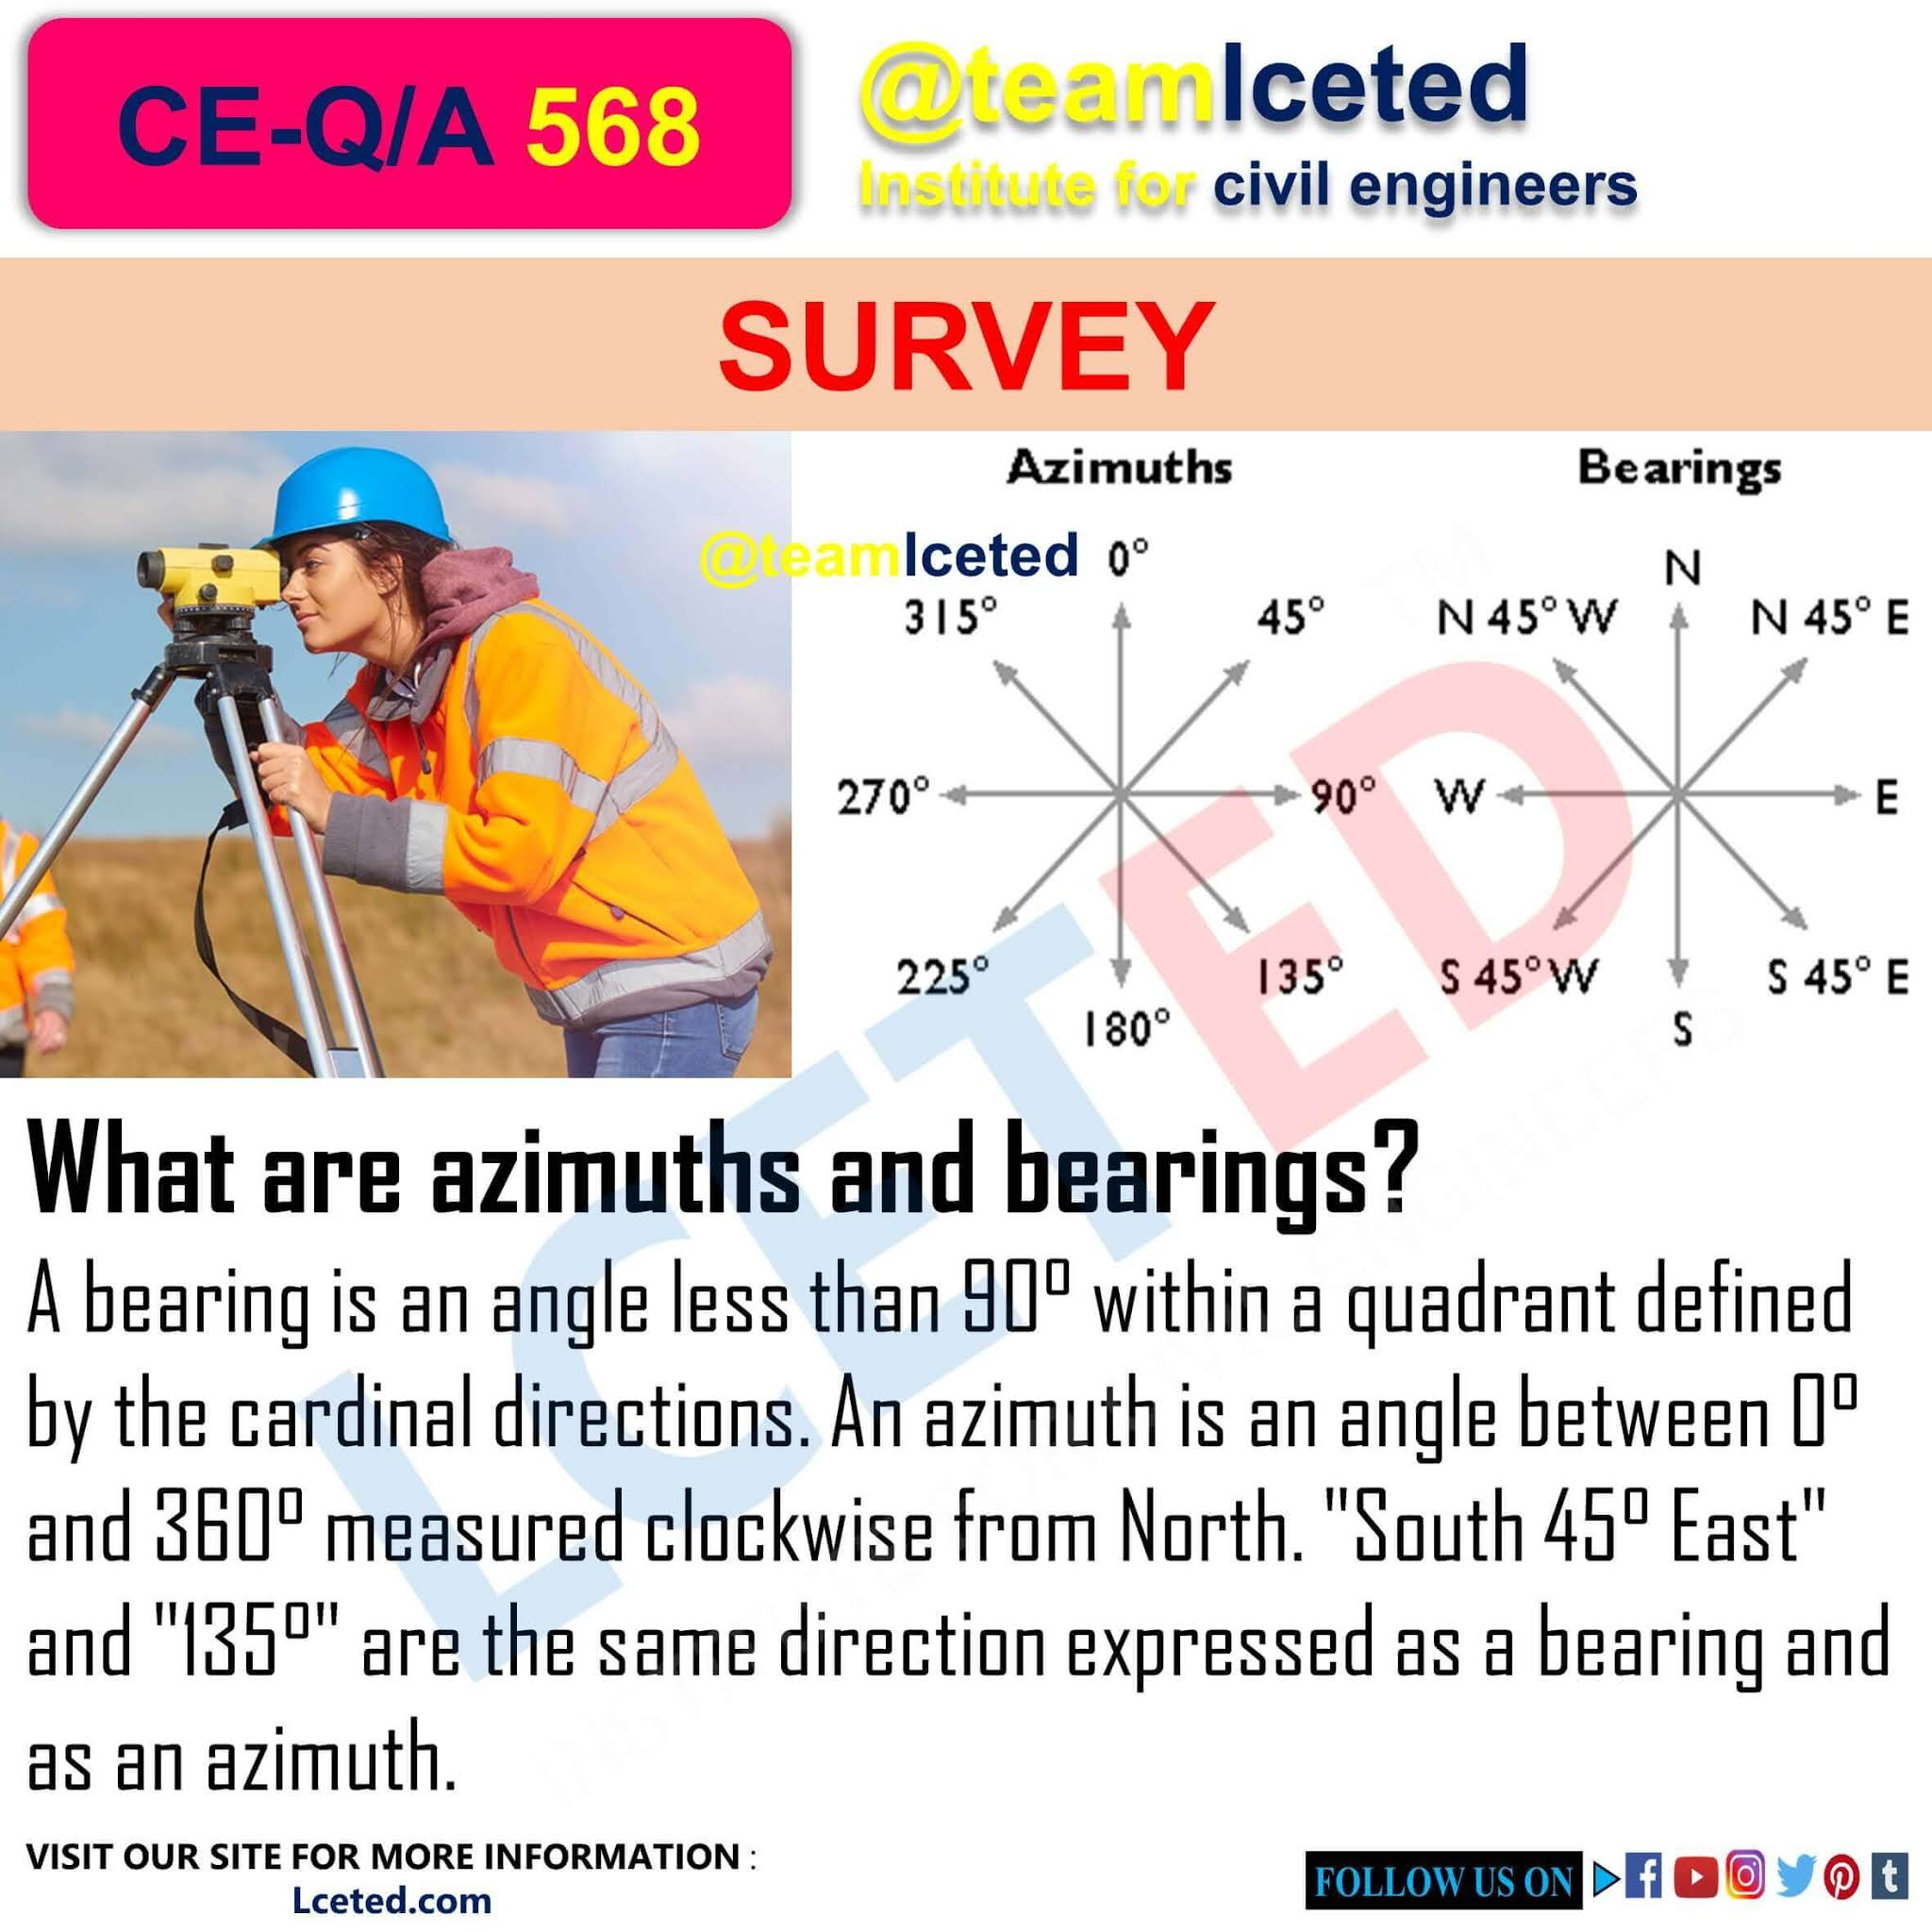 WHAT IS AZIMUTH AND BEARINGS IN SURVEYING